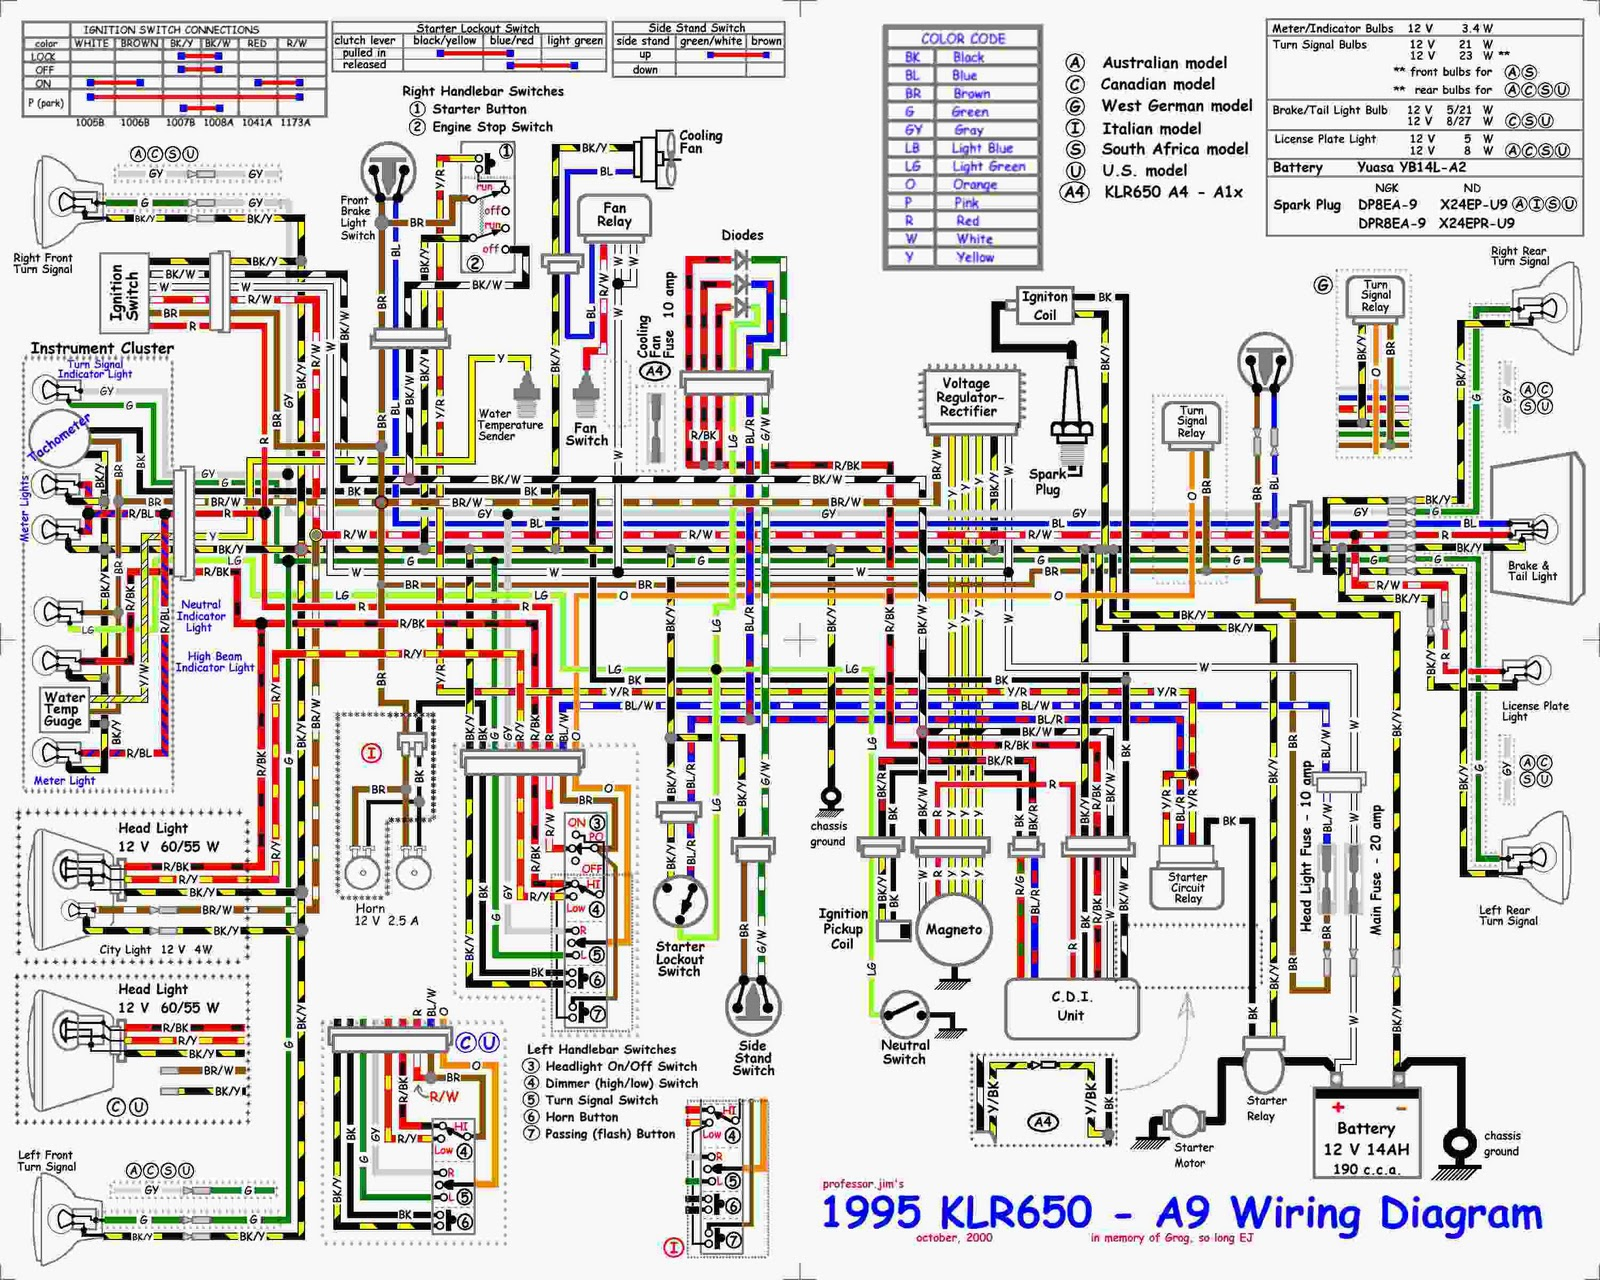 wiring diagram daihatsu manual wiring diagram toolbox daihatsu wiring diagram download wiring diagram used wiring diagram [ 1600 x 1280 Pixel ]